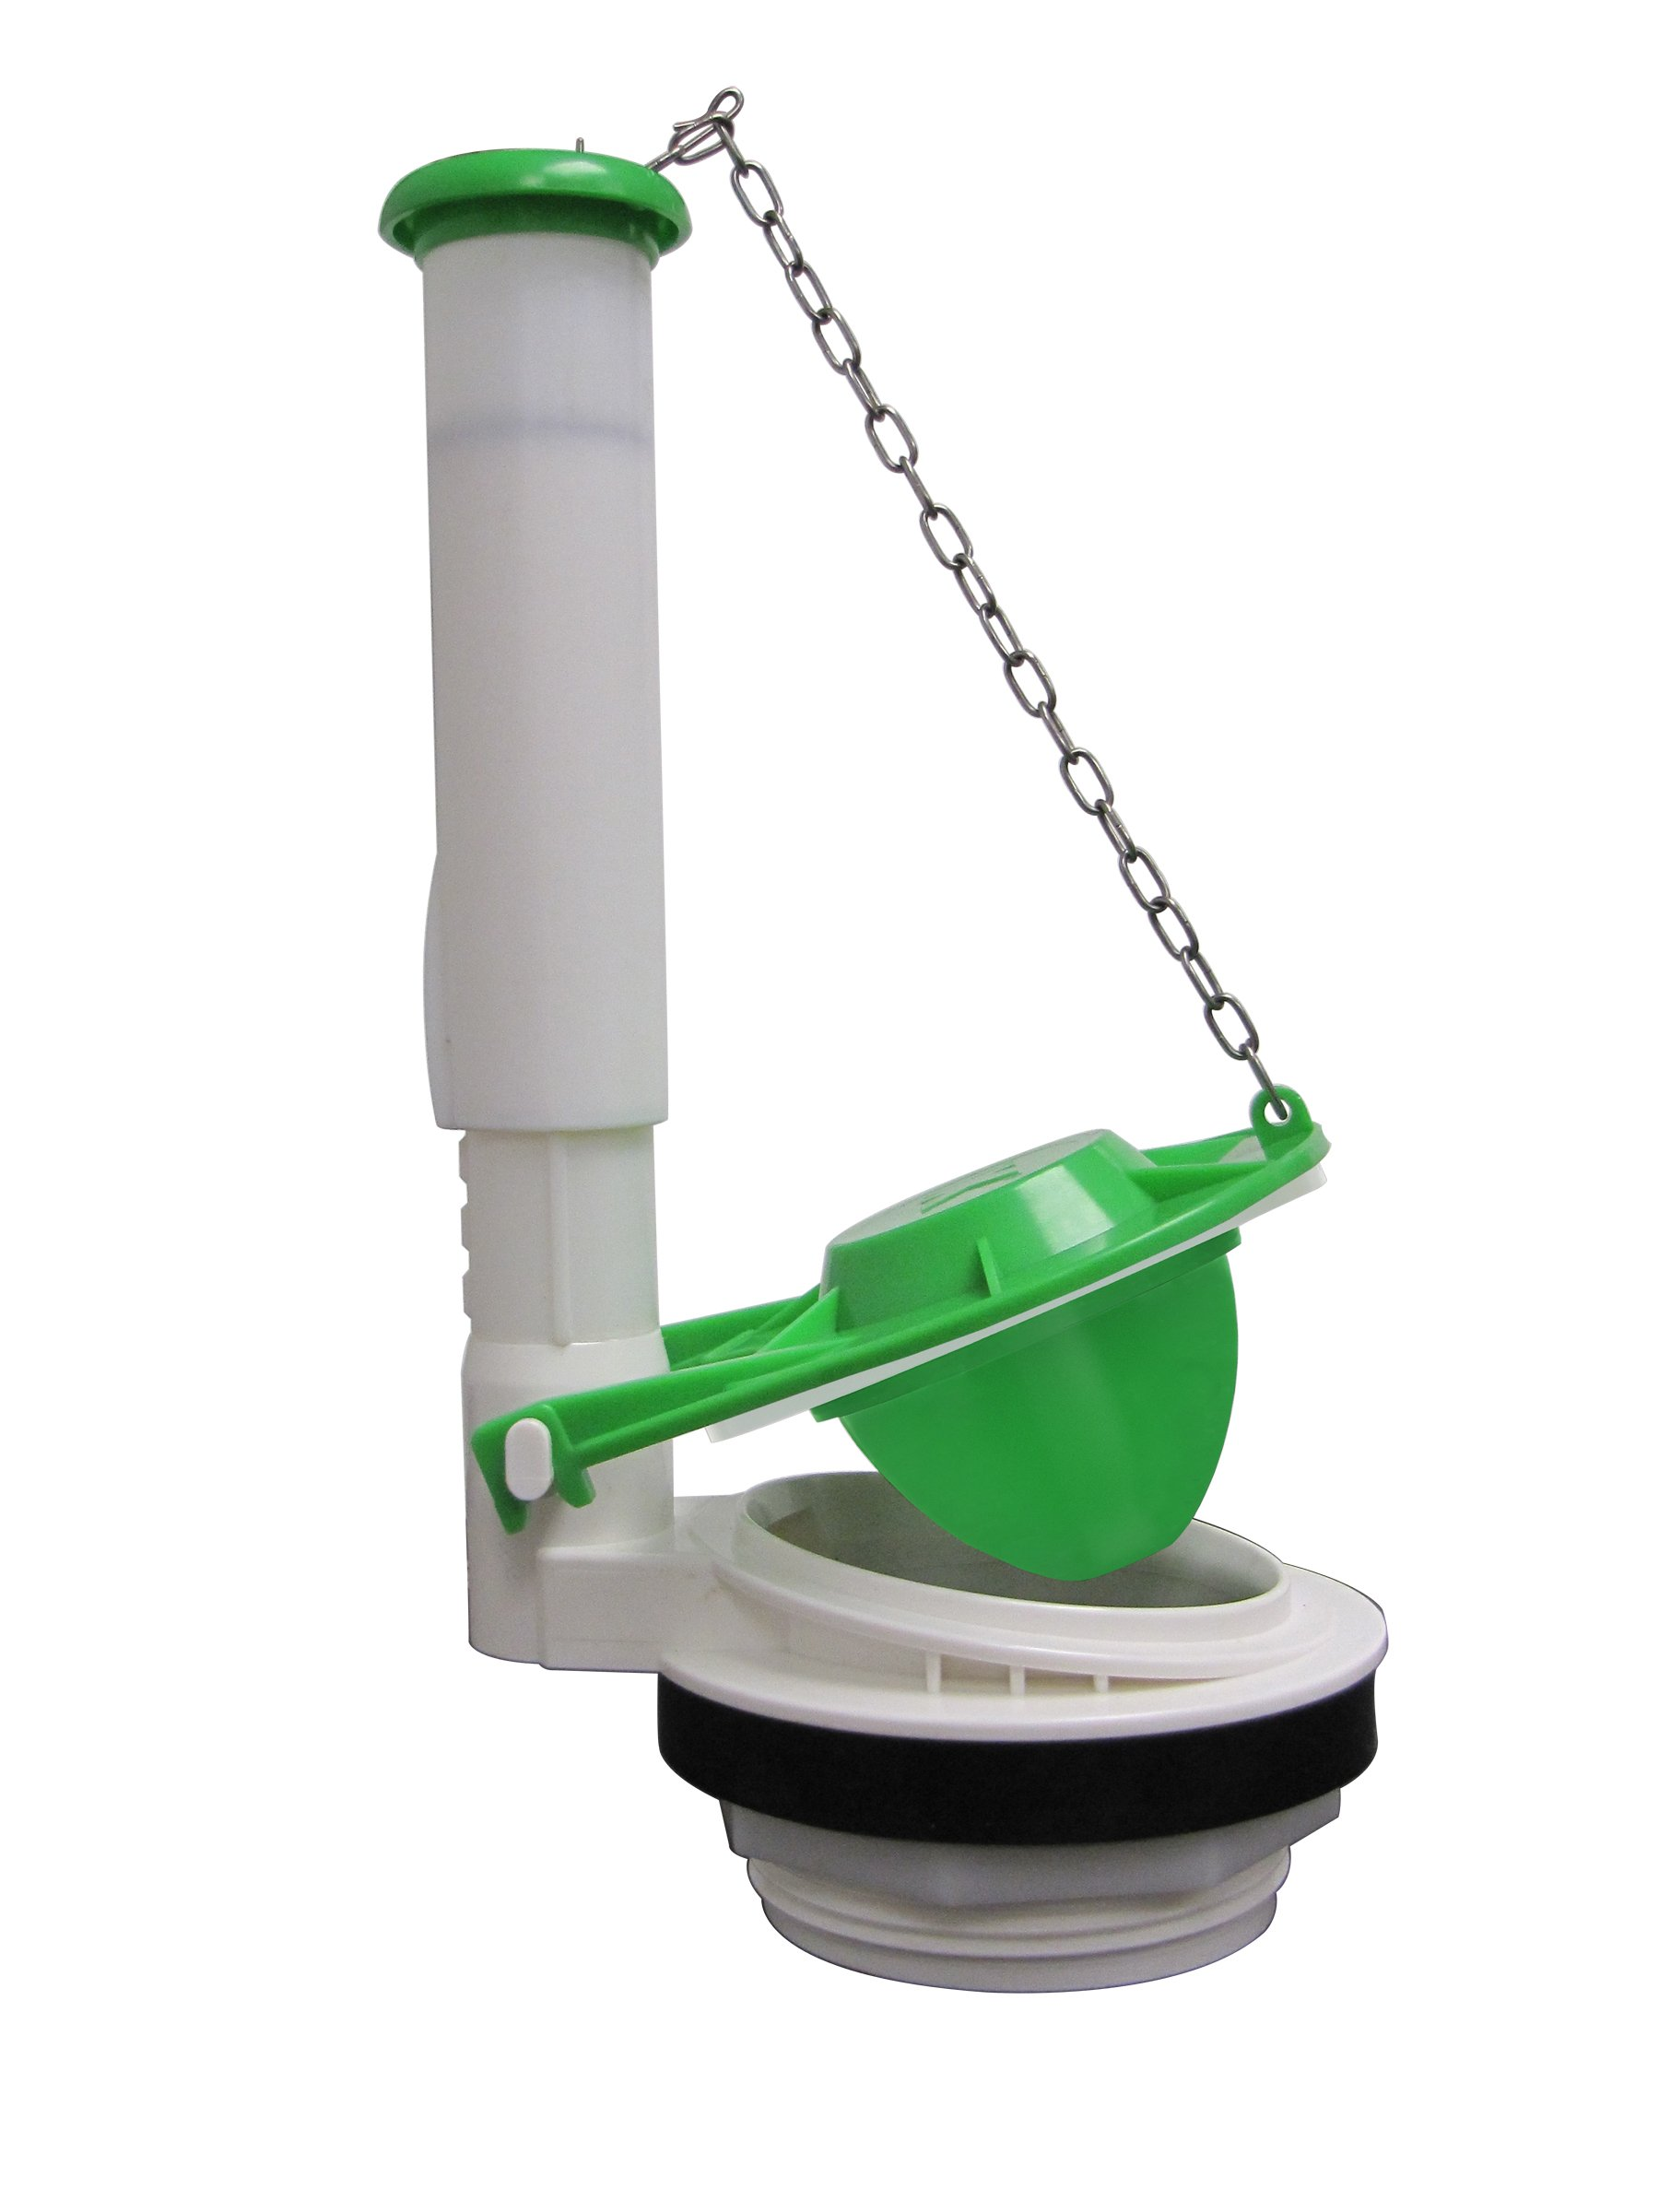 Keeney K835-12 3-Inch Toilet Flush Valve Fits Toto, Gerber, Mansfield, Crane, Jacuzzi or Any Flush Valve with Similar Thread Size, White, Green